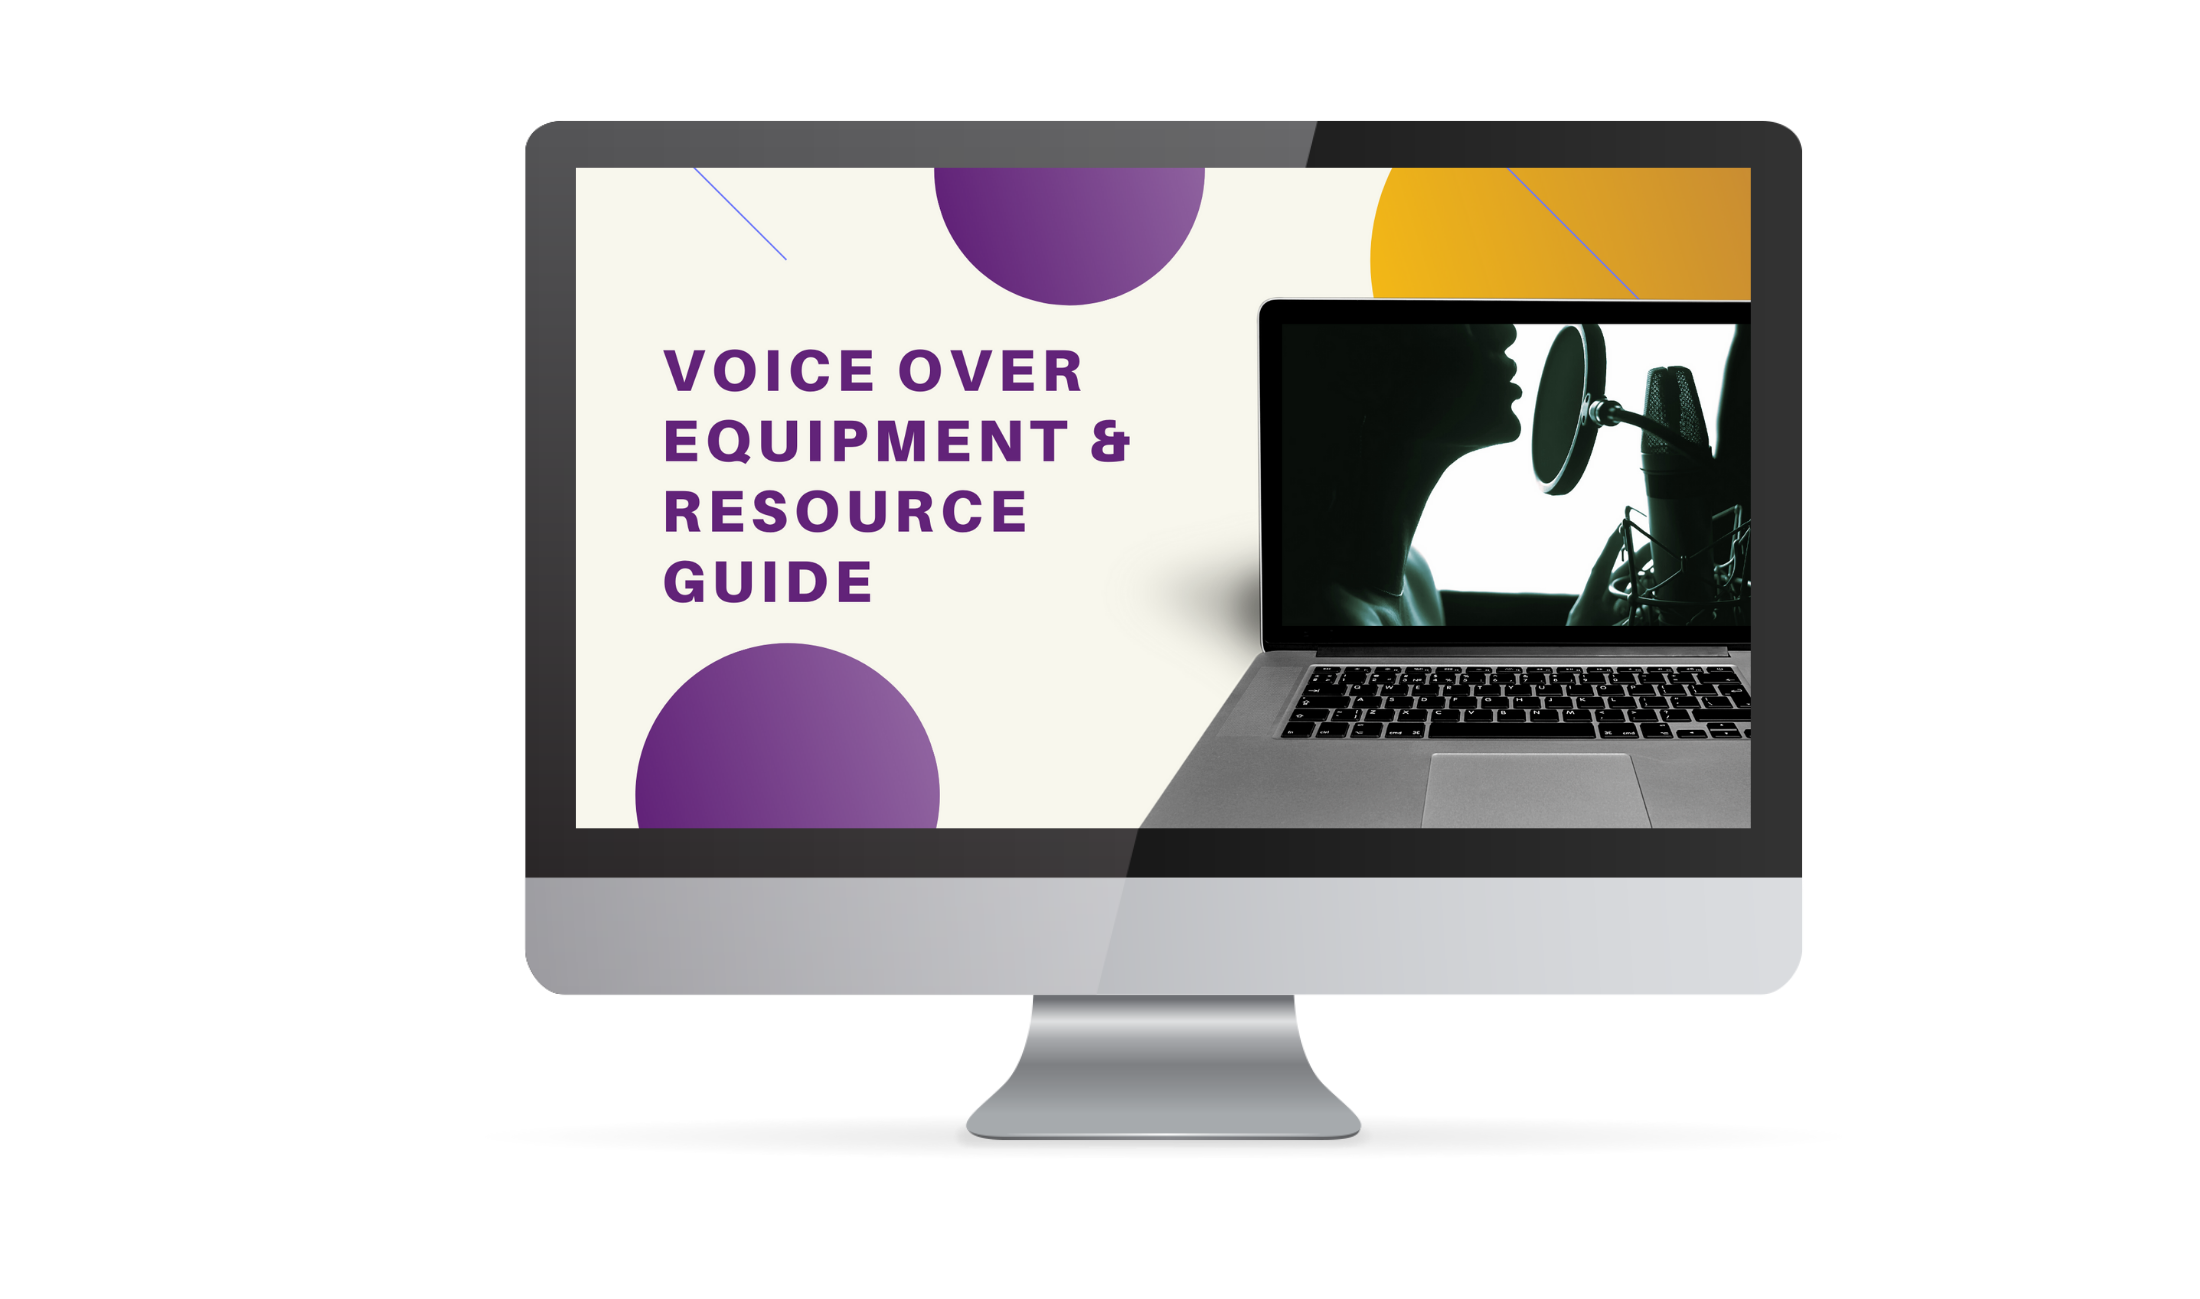 Voiceover equipment and resource guide